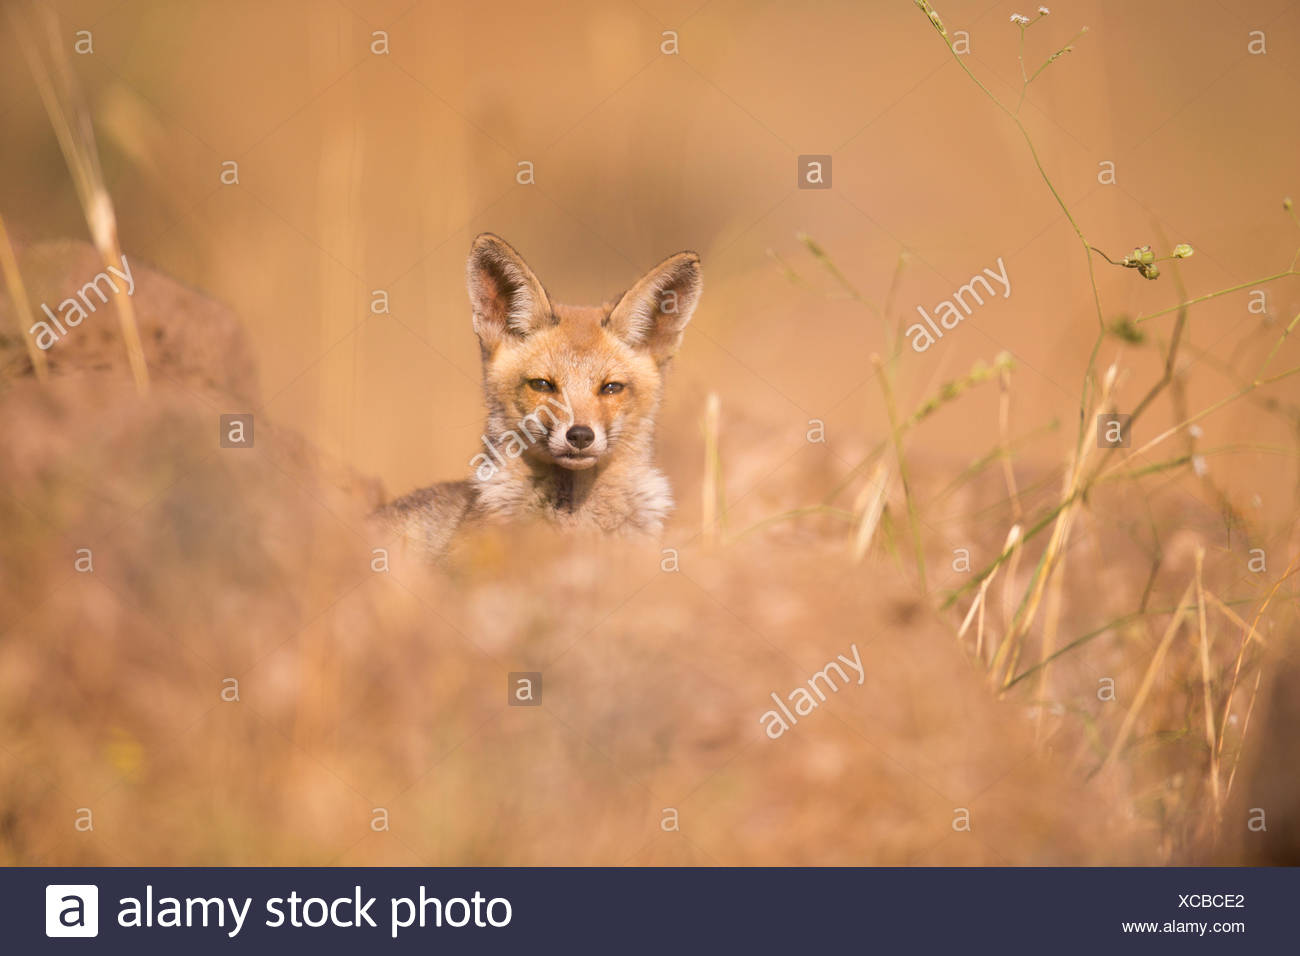 Juvenile Red Fox (Vulpes vulpes). The Red Fox is the largest of the true foxes, as well as being the most geographically spread member of the Carnivor - Stock Image